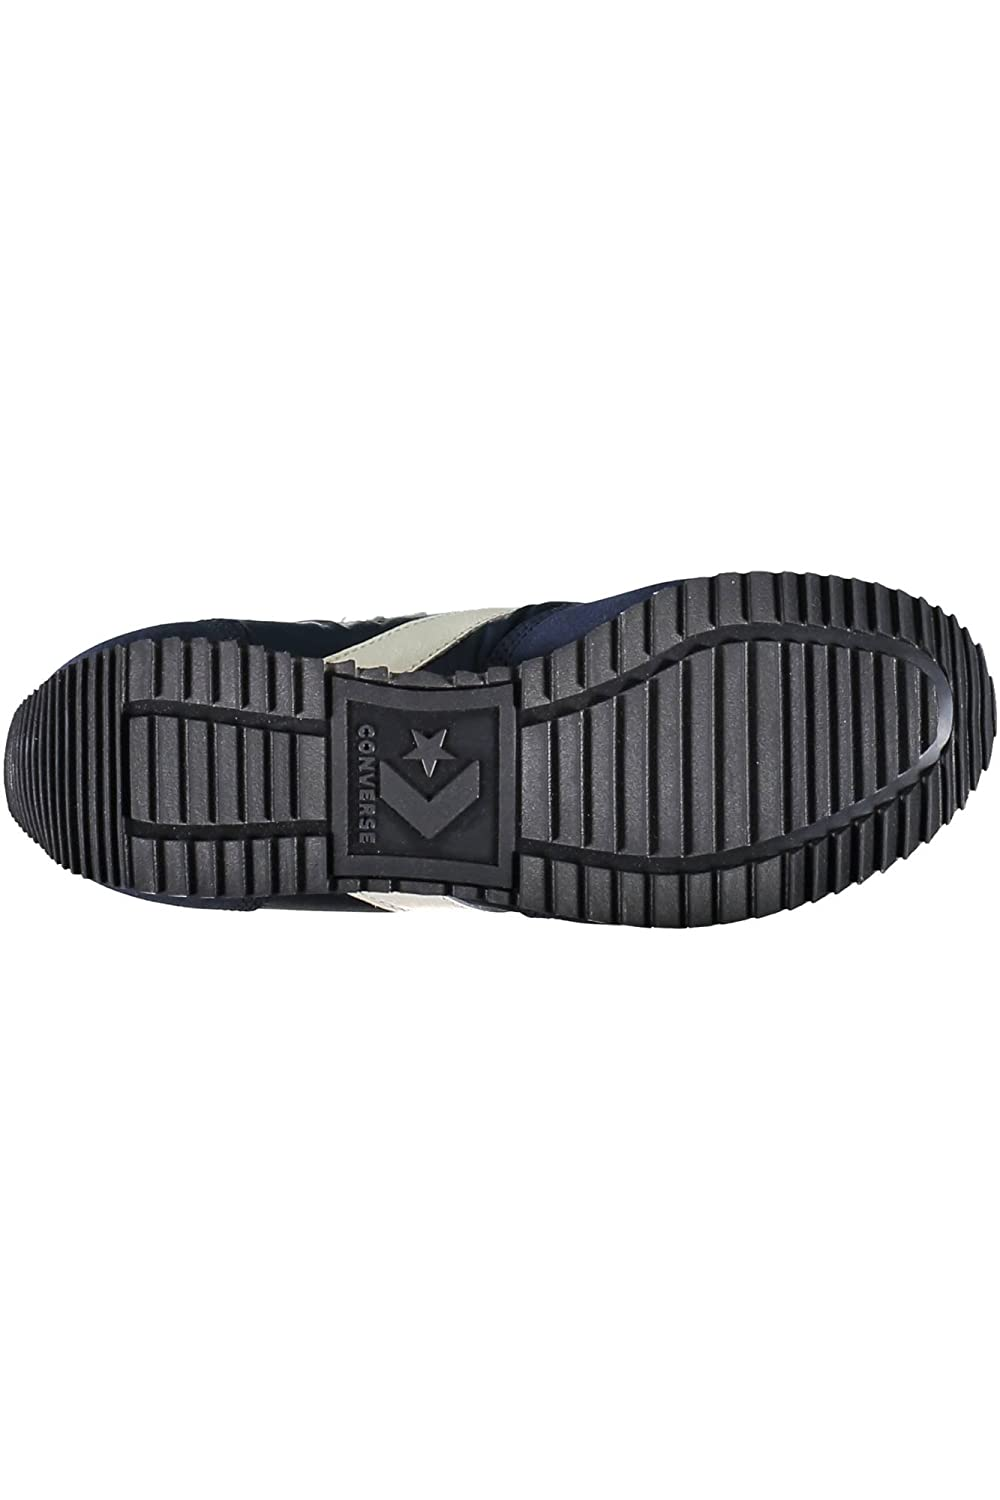 253baca73402 Converse Shoes Men Low Sneakers 161232C All Star Trainer Ox  Amazon.co.uk   Shoes   Bags